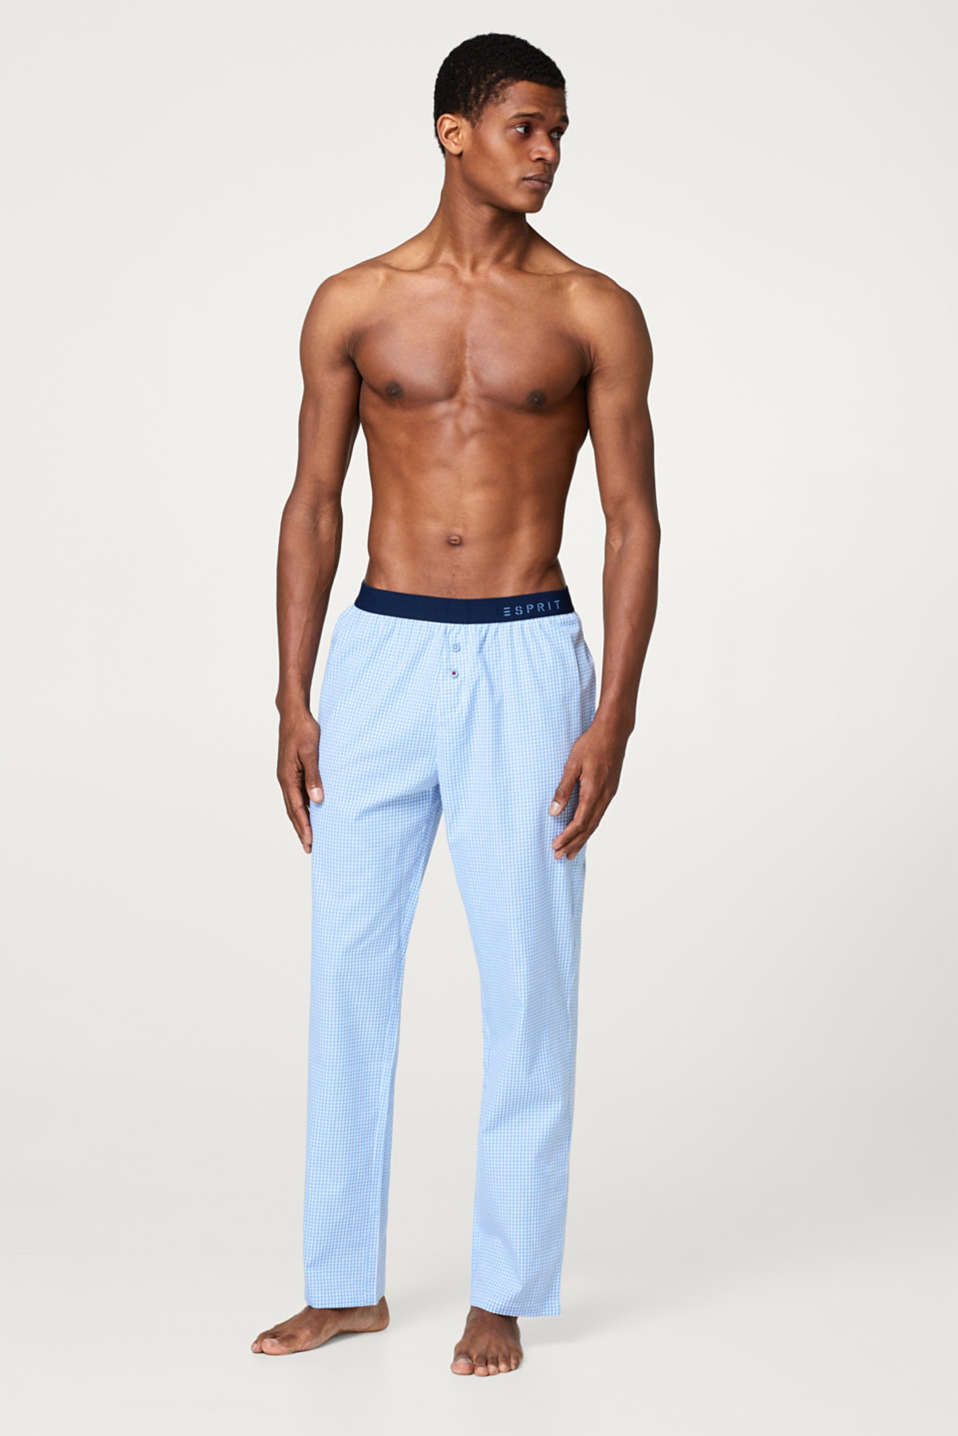 Esprit - Lightweight pyjama bottoms with a gingham check pattern, 100% cotton